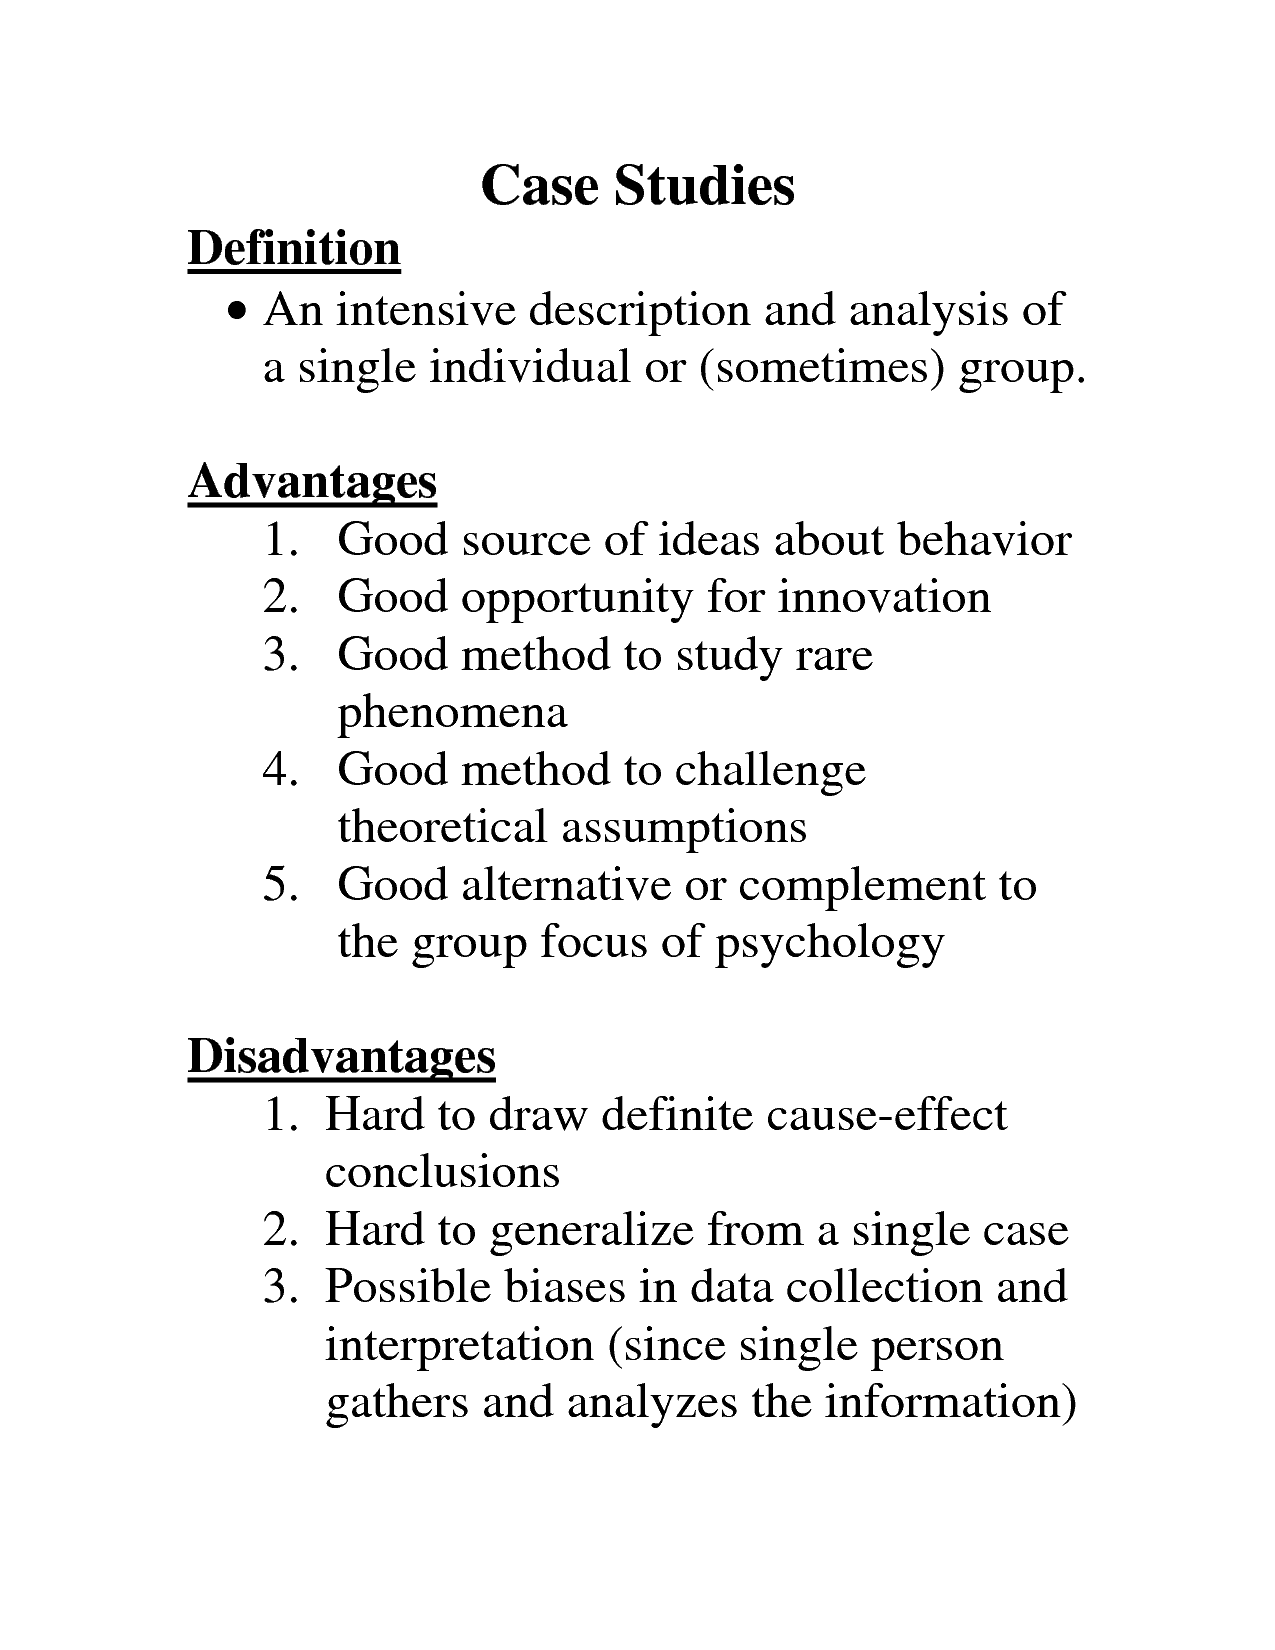 definition of case study Psychology definition for case study in normal everyday language, edited by psychologists, professors and leading students help us get better.